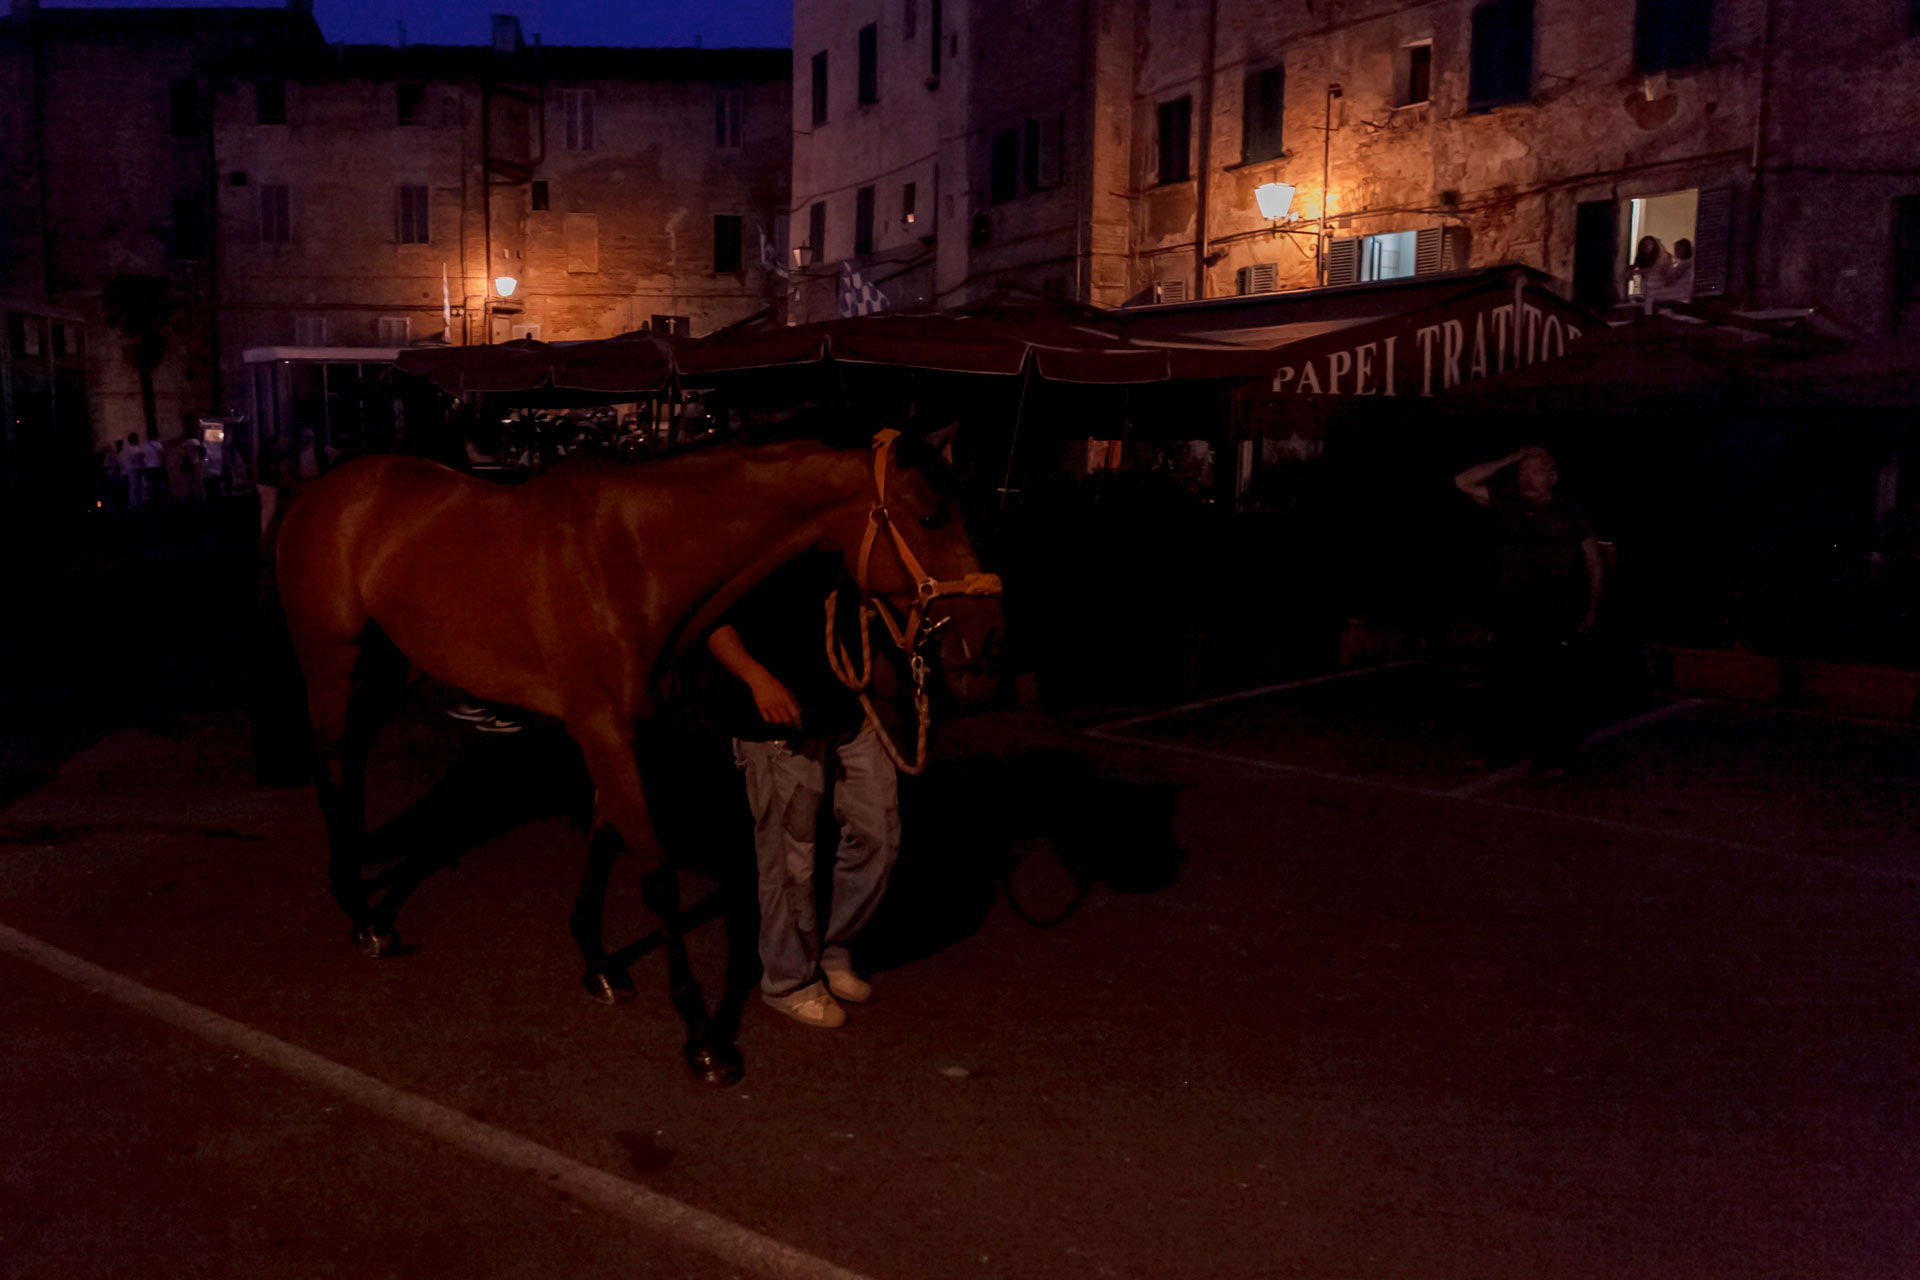 THE NIGHT RACES - Here we are, the days of the Palio are upon us. Appointment with Barbaresco at dawn in Piazza del Mercato. This is where all the horses arrive aboard their Vans equipped for safe transport